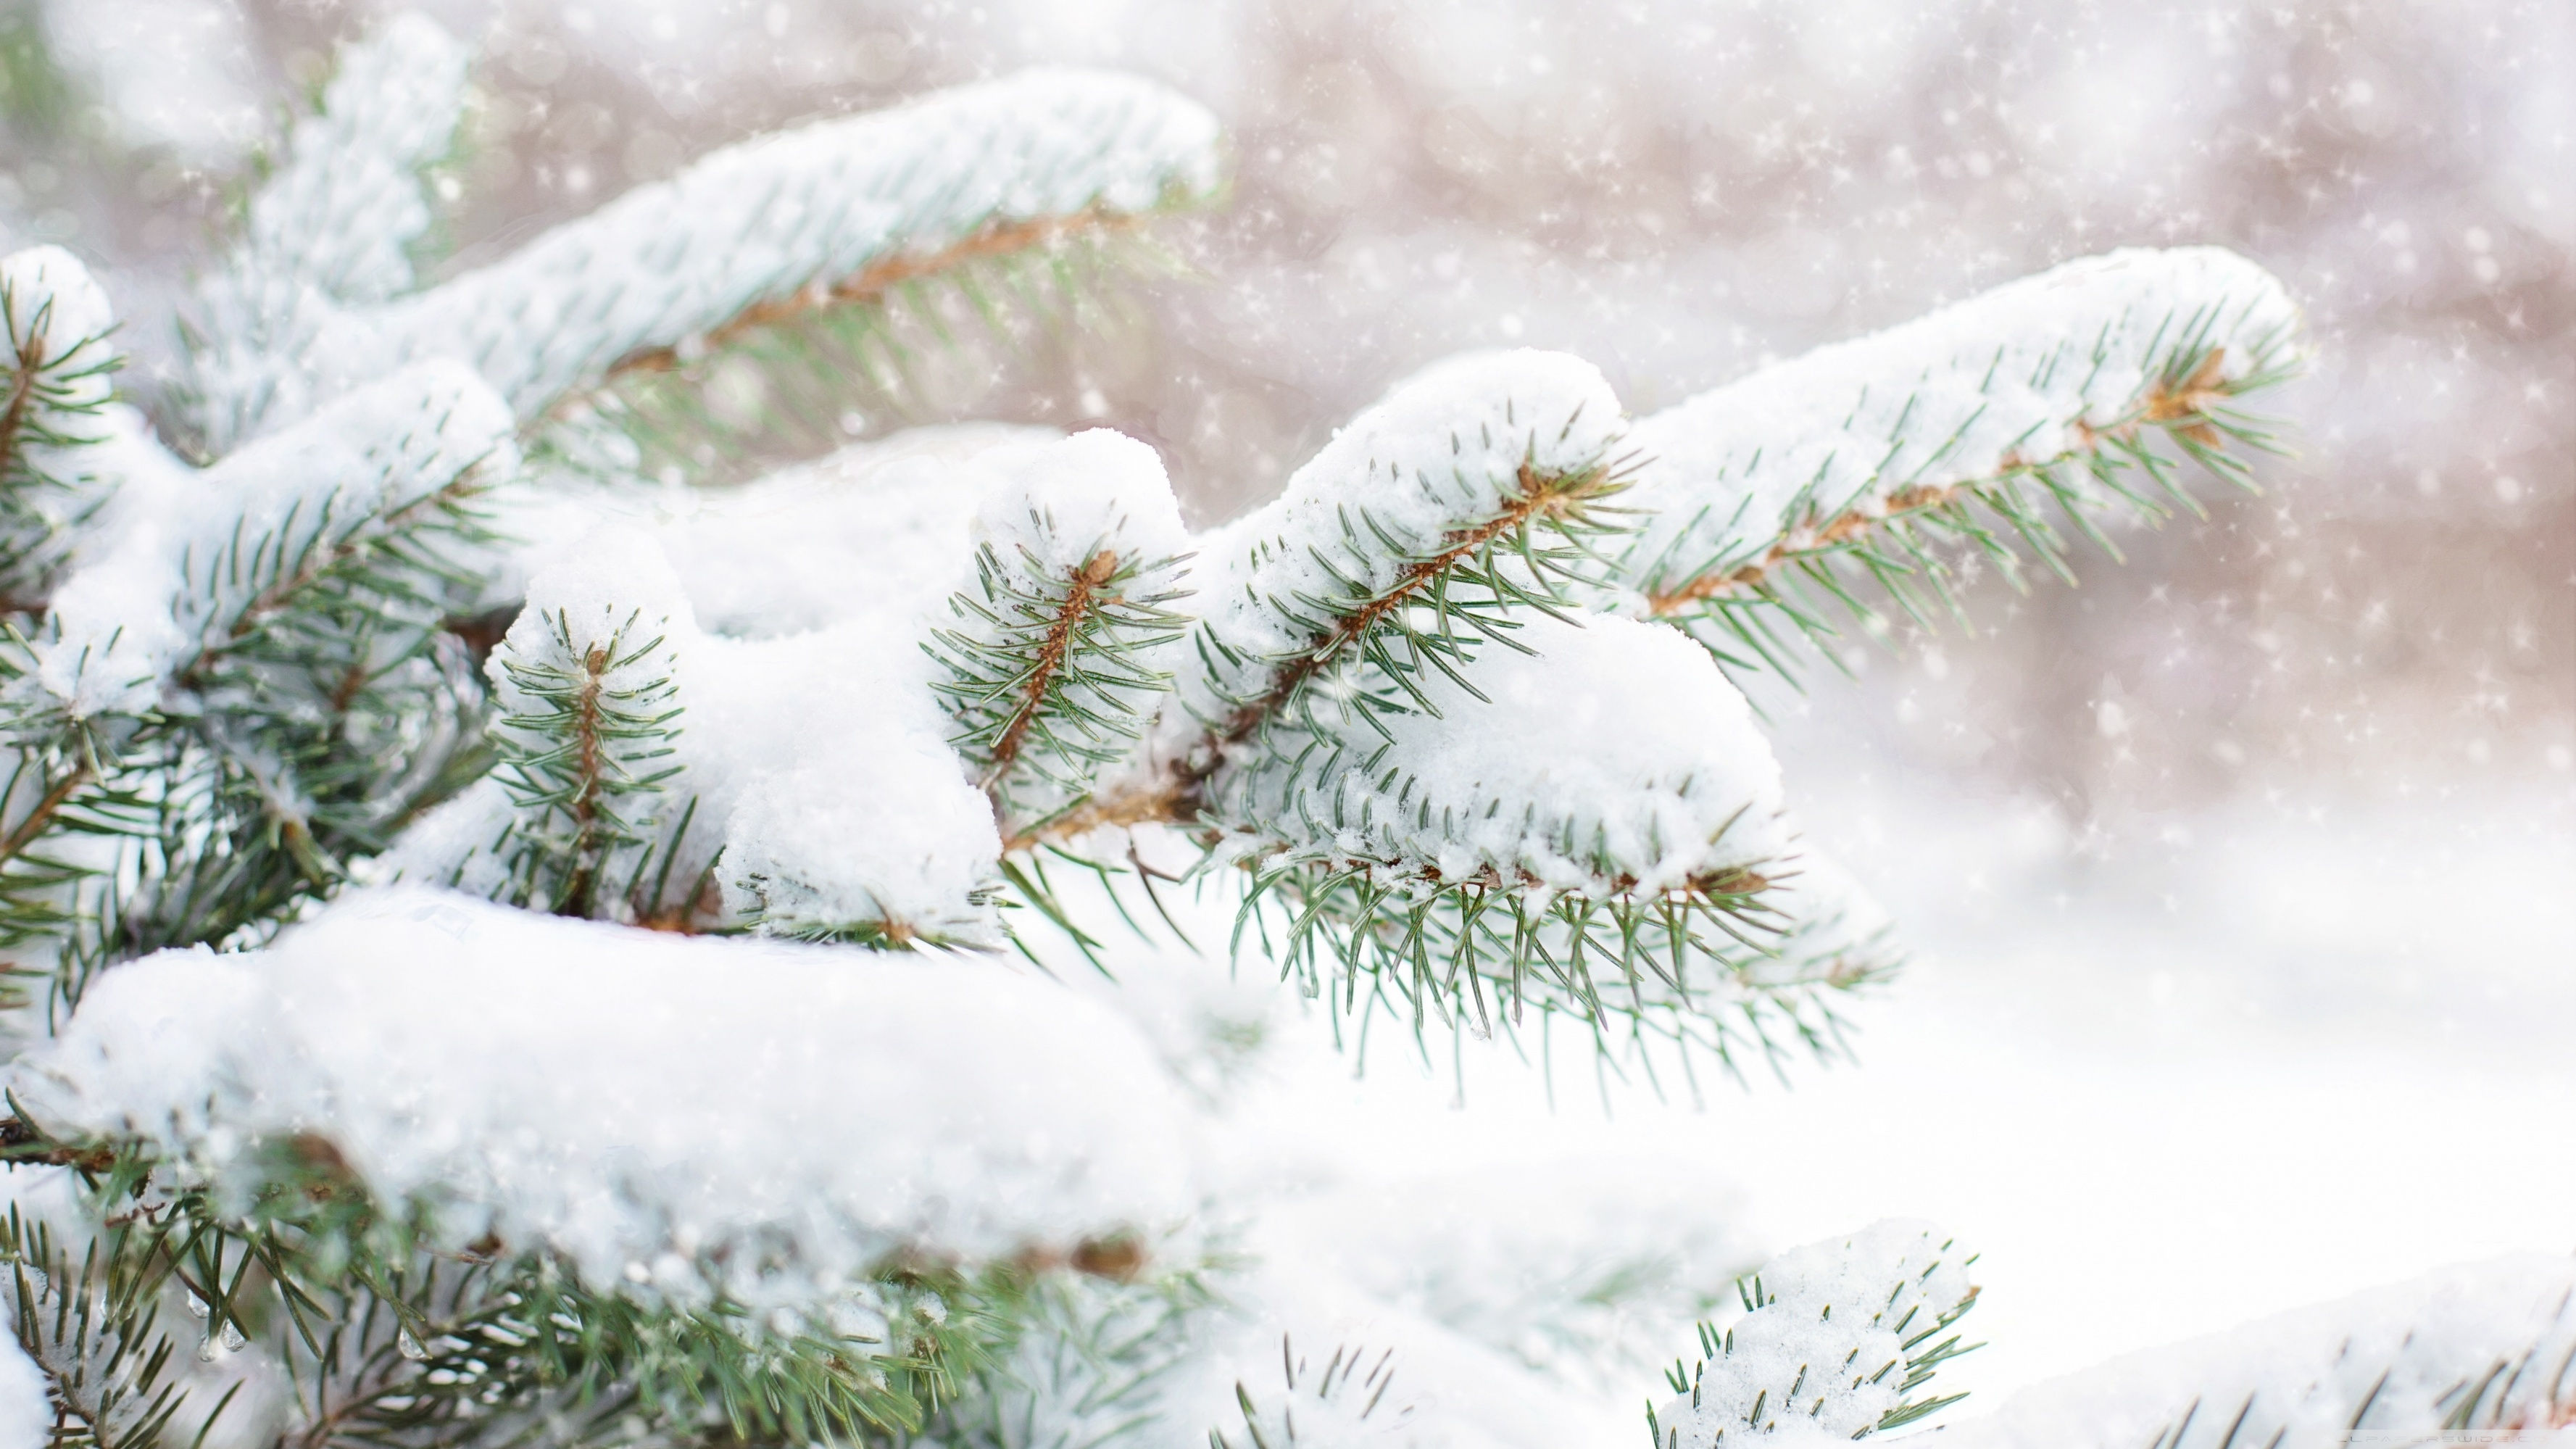 Snow Falling Wallpaper For Ipad Snow Falling On Pine Trees Hd Wallpapers